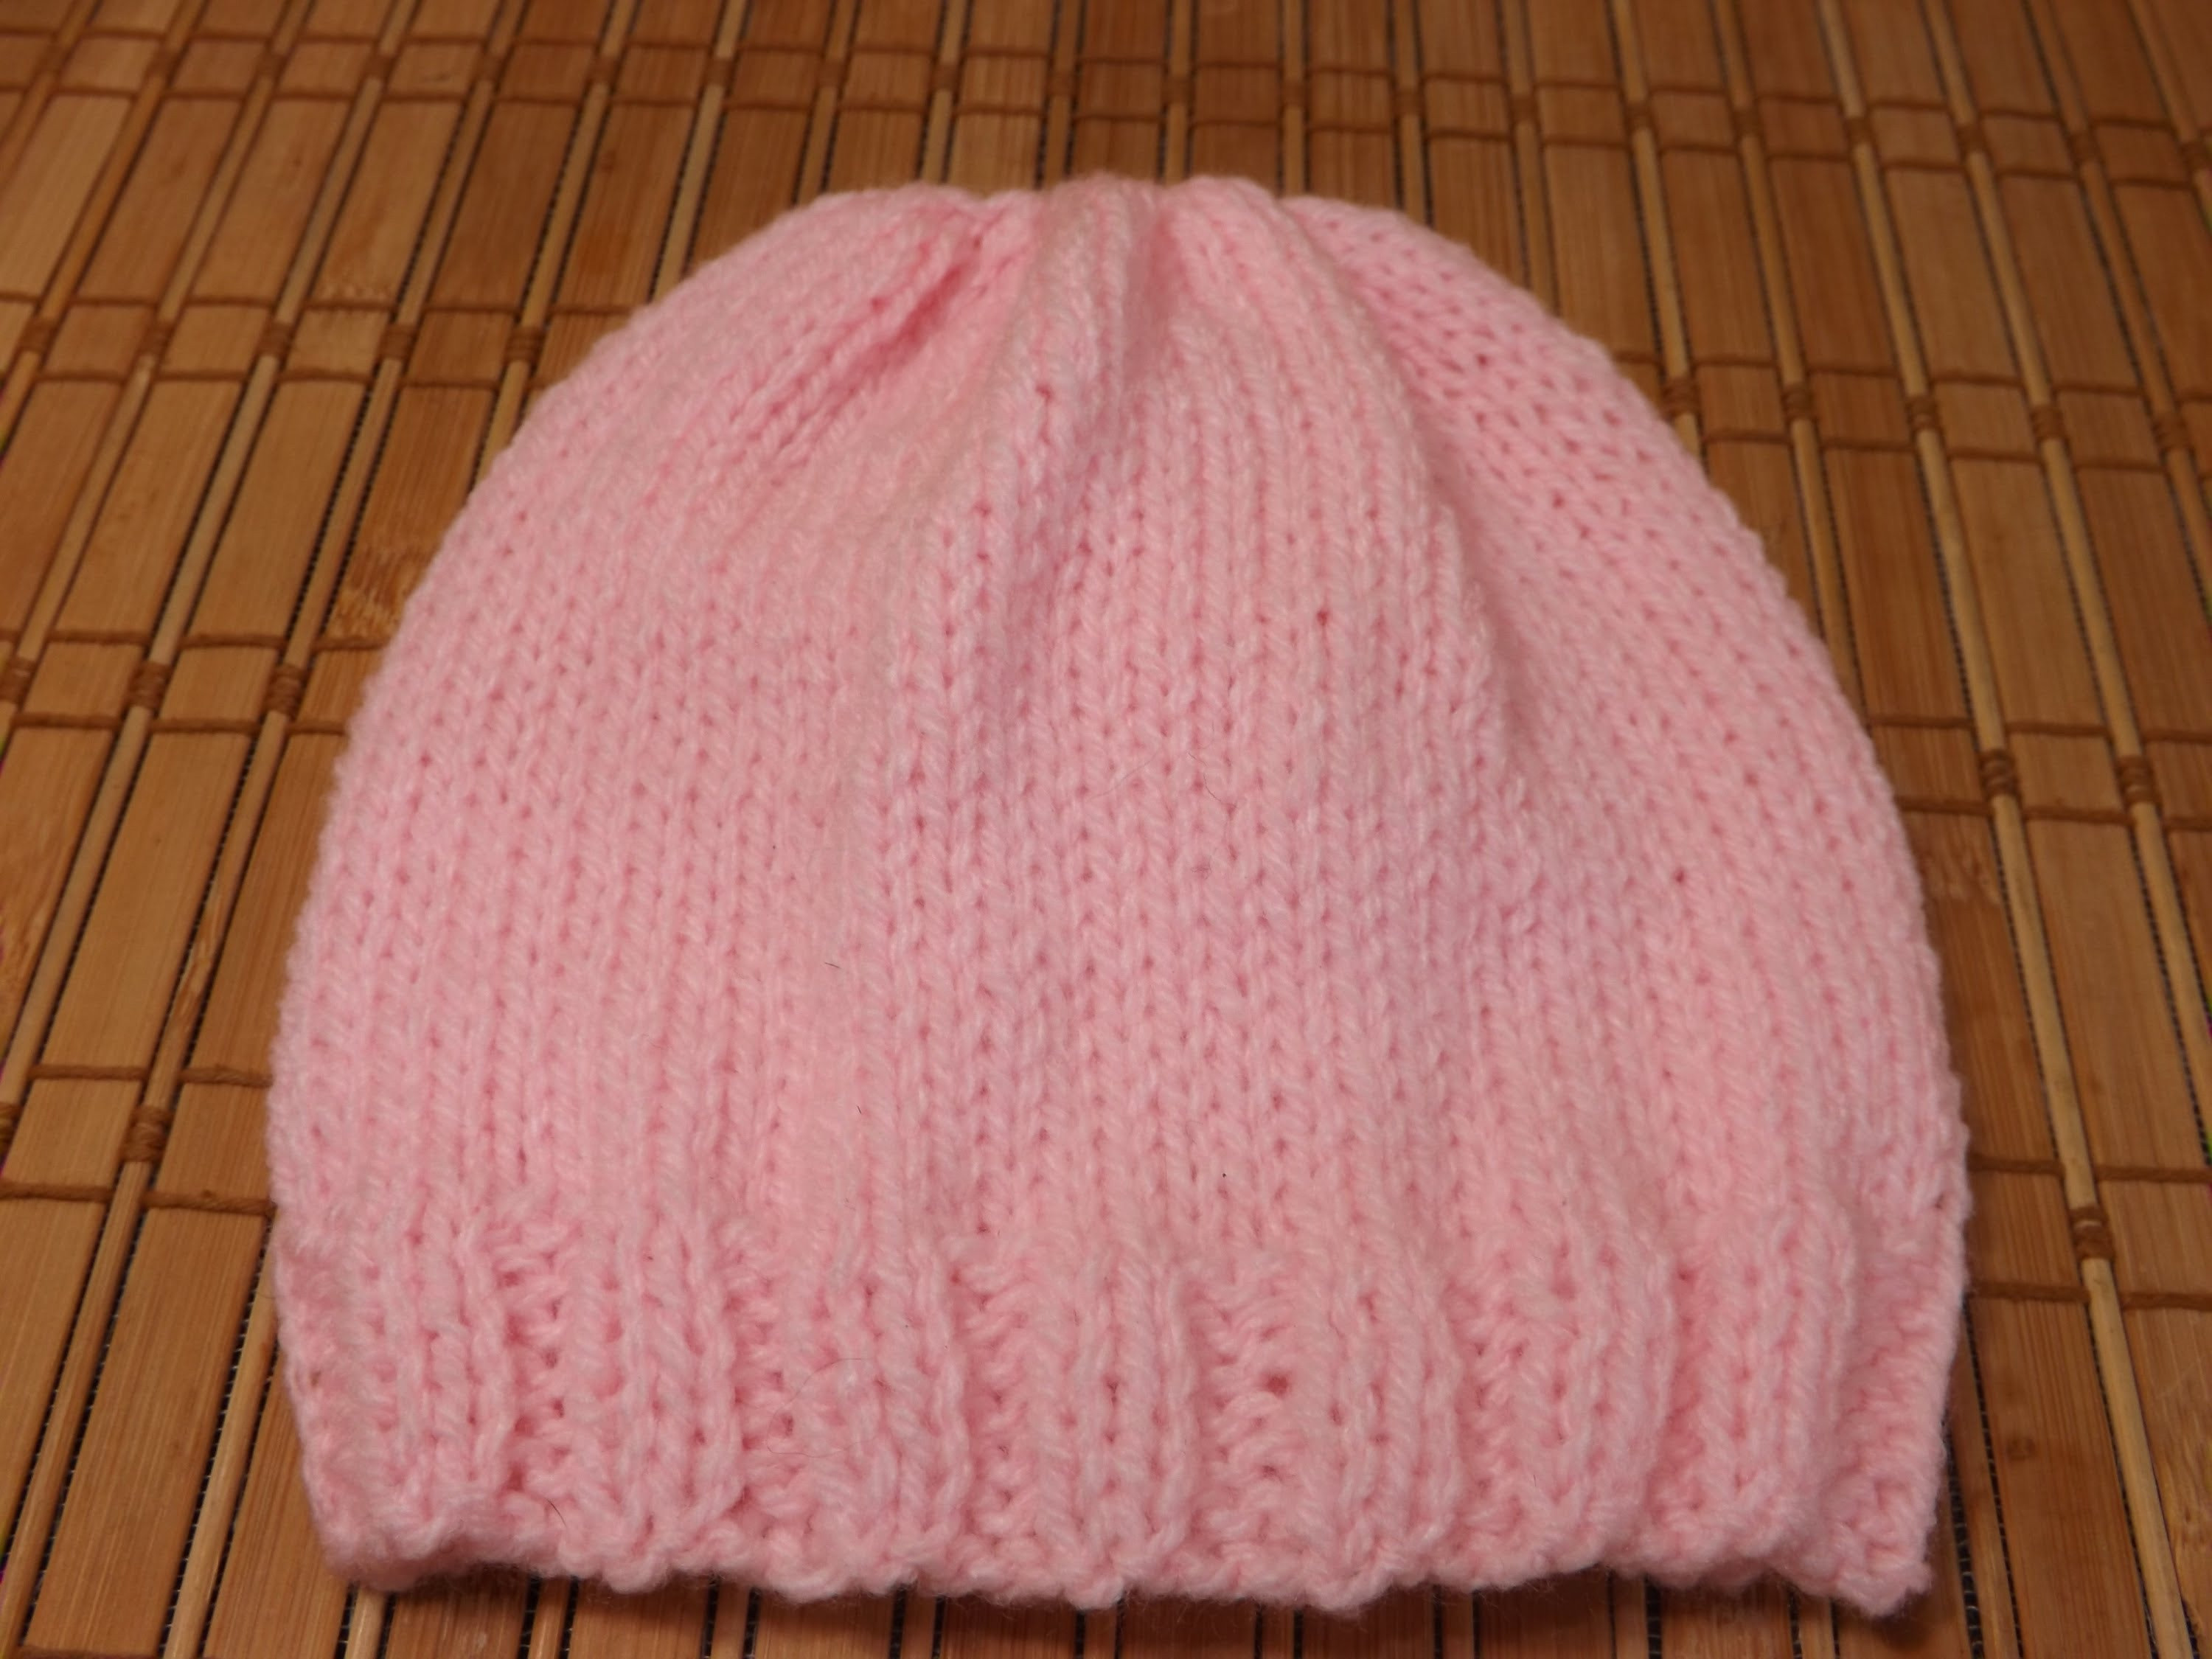 Free Knitting Patterns for Baby Hats Luxury Free Easy Knitting Patterns for Beginners Hats Of Perfect 44 Models Free Knitting Patterns for Baby Hats